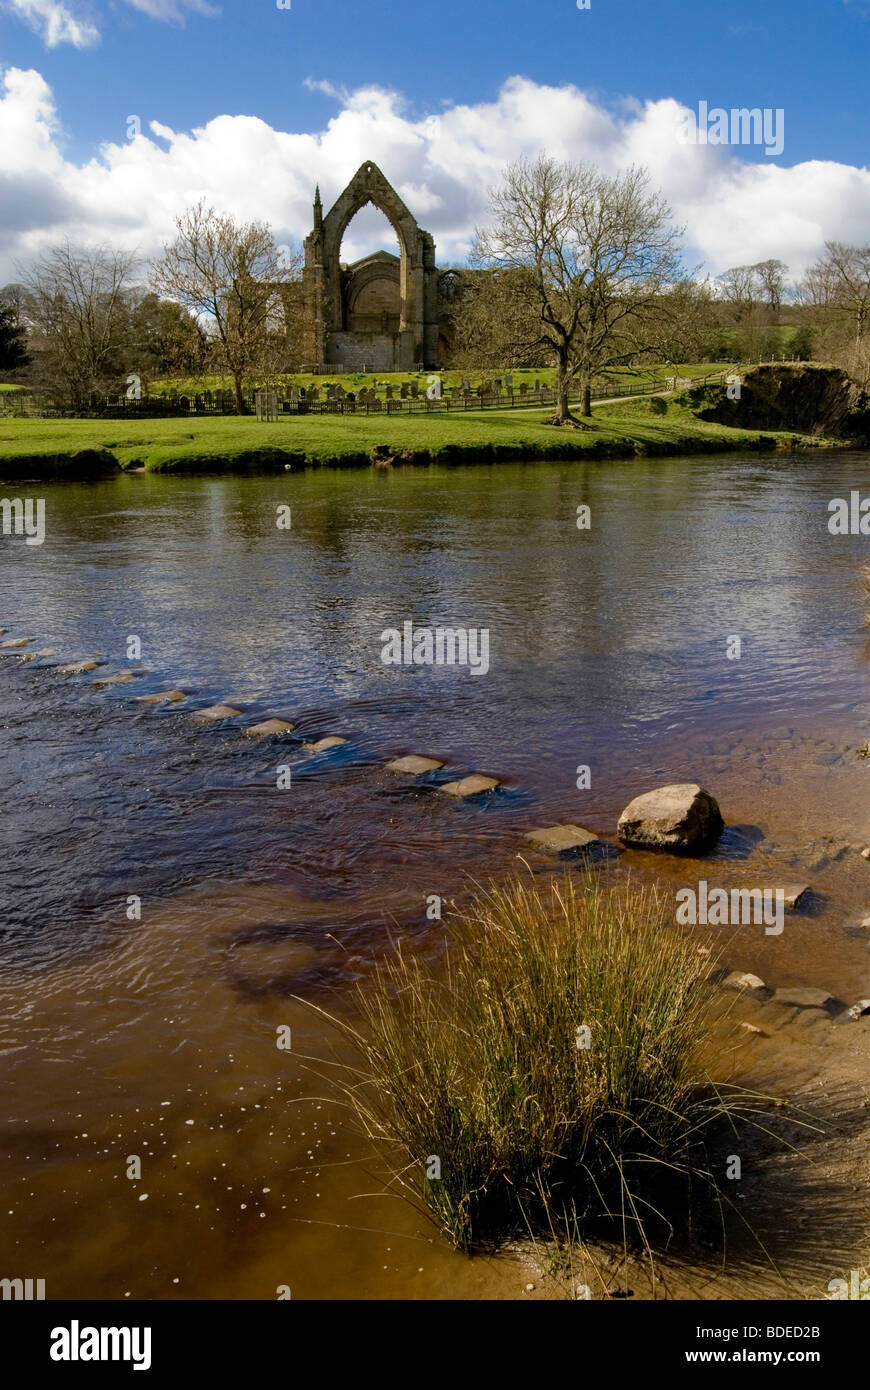 Bolton Abbey, Yorkshire Dales - Stock Image